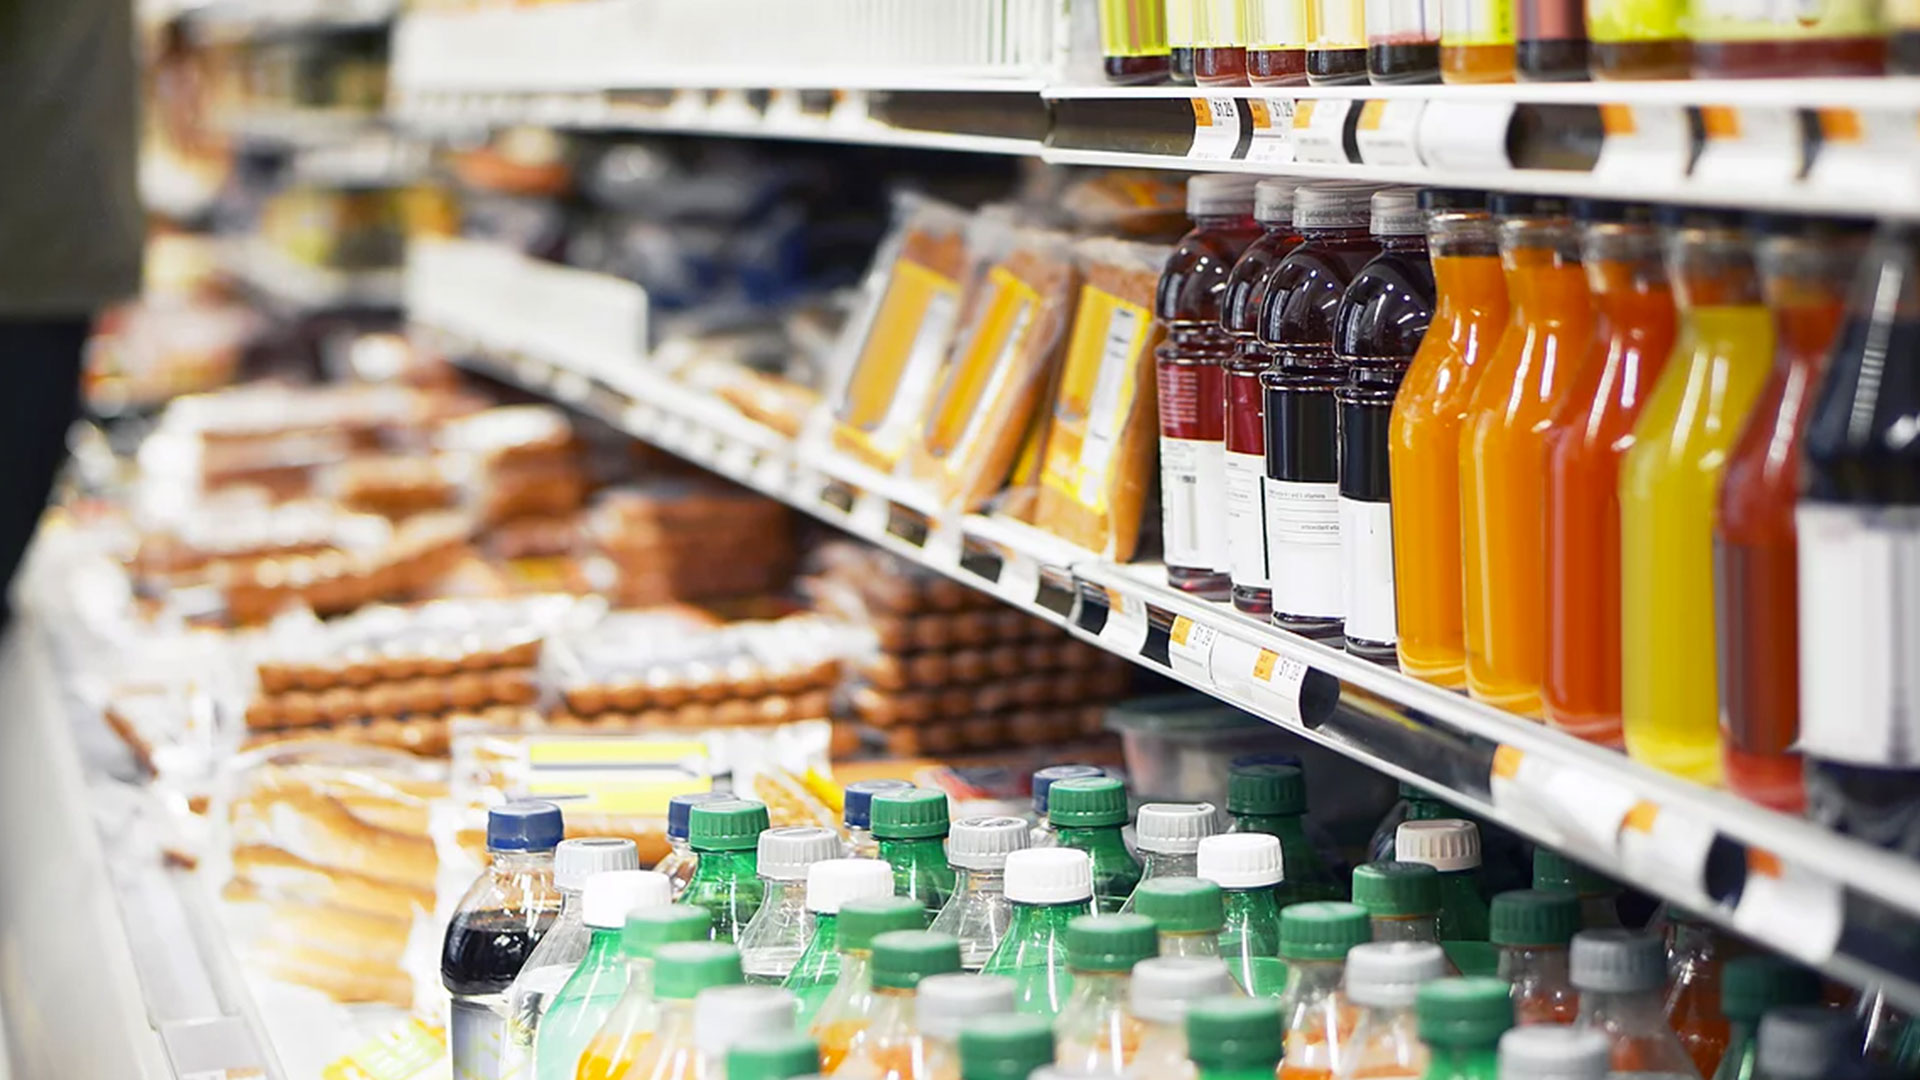 Why Should Food Brands Go into Retail and Merchandising?